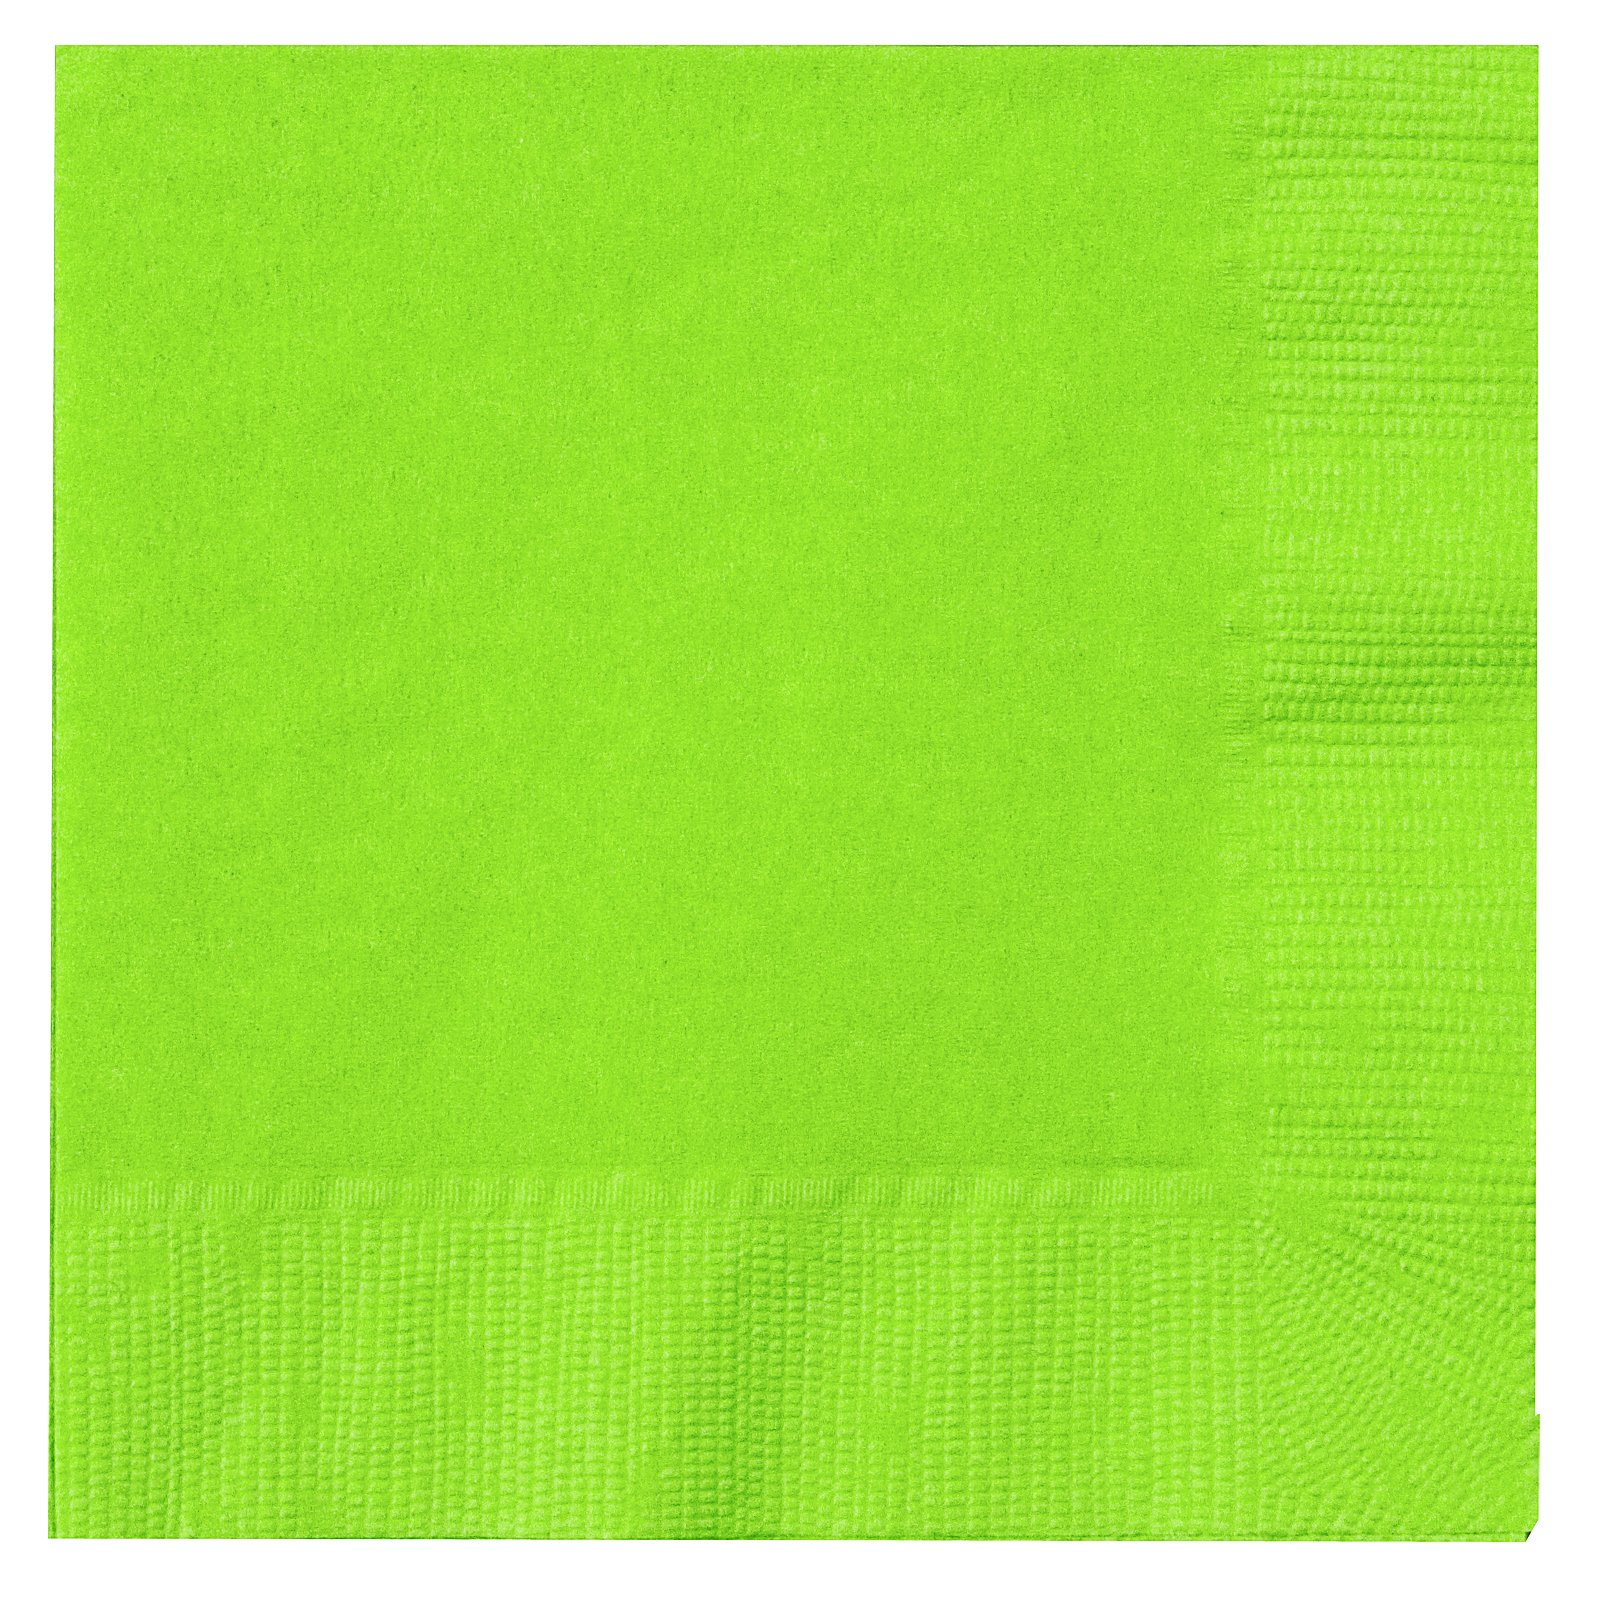 Fresh Lime (Lime Green) Beverage Napkins (50 count)